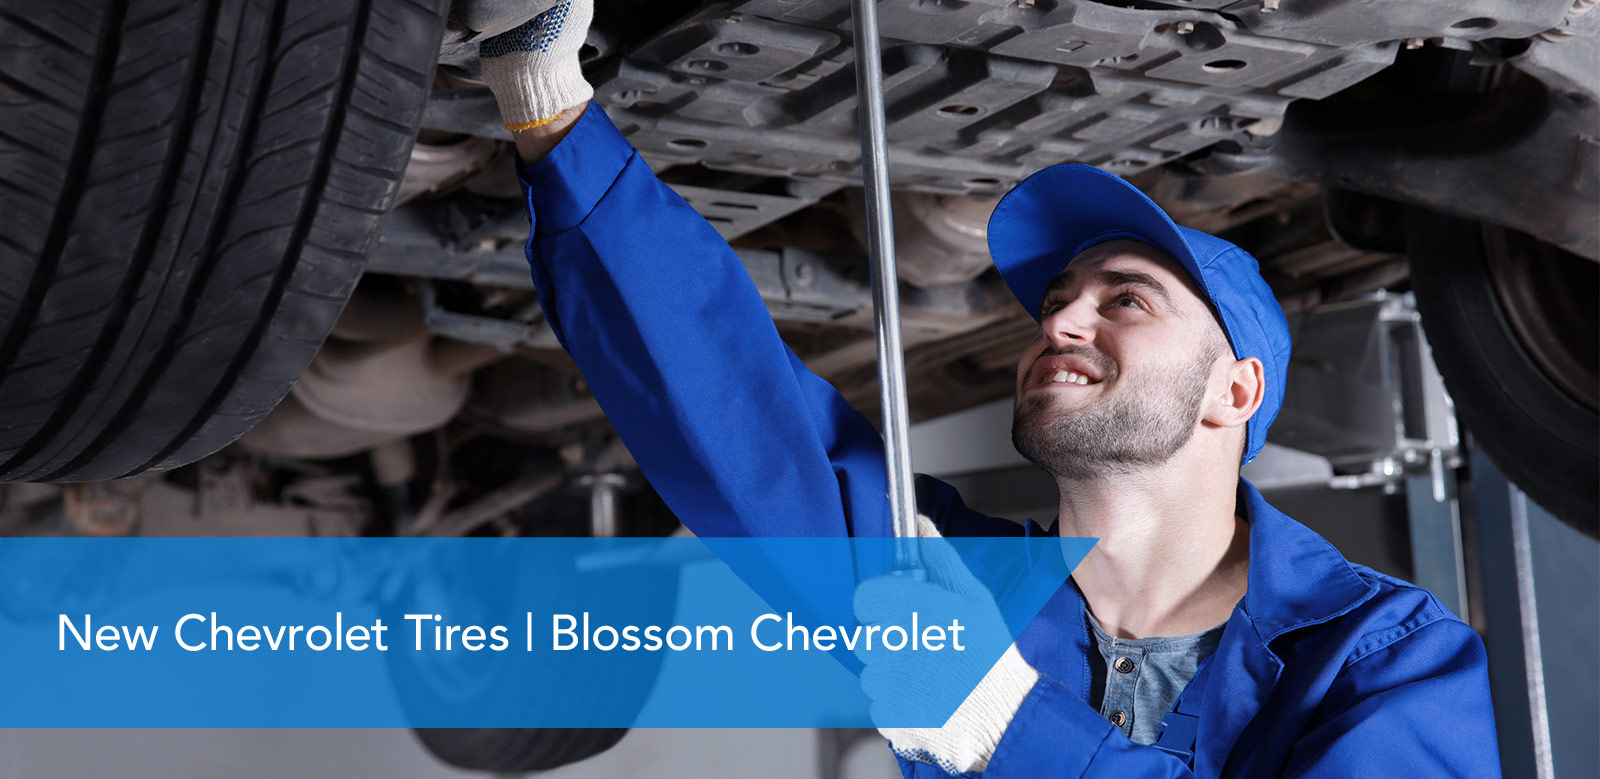 Blossom Chevrolet is a Indianapolis Chevrolet dealer and a ...